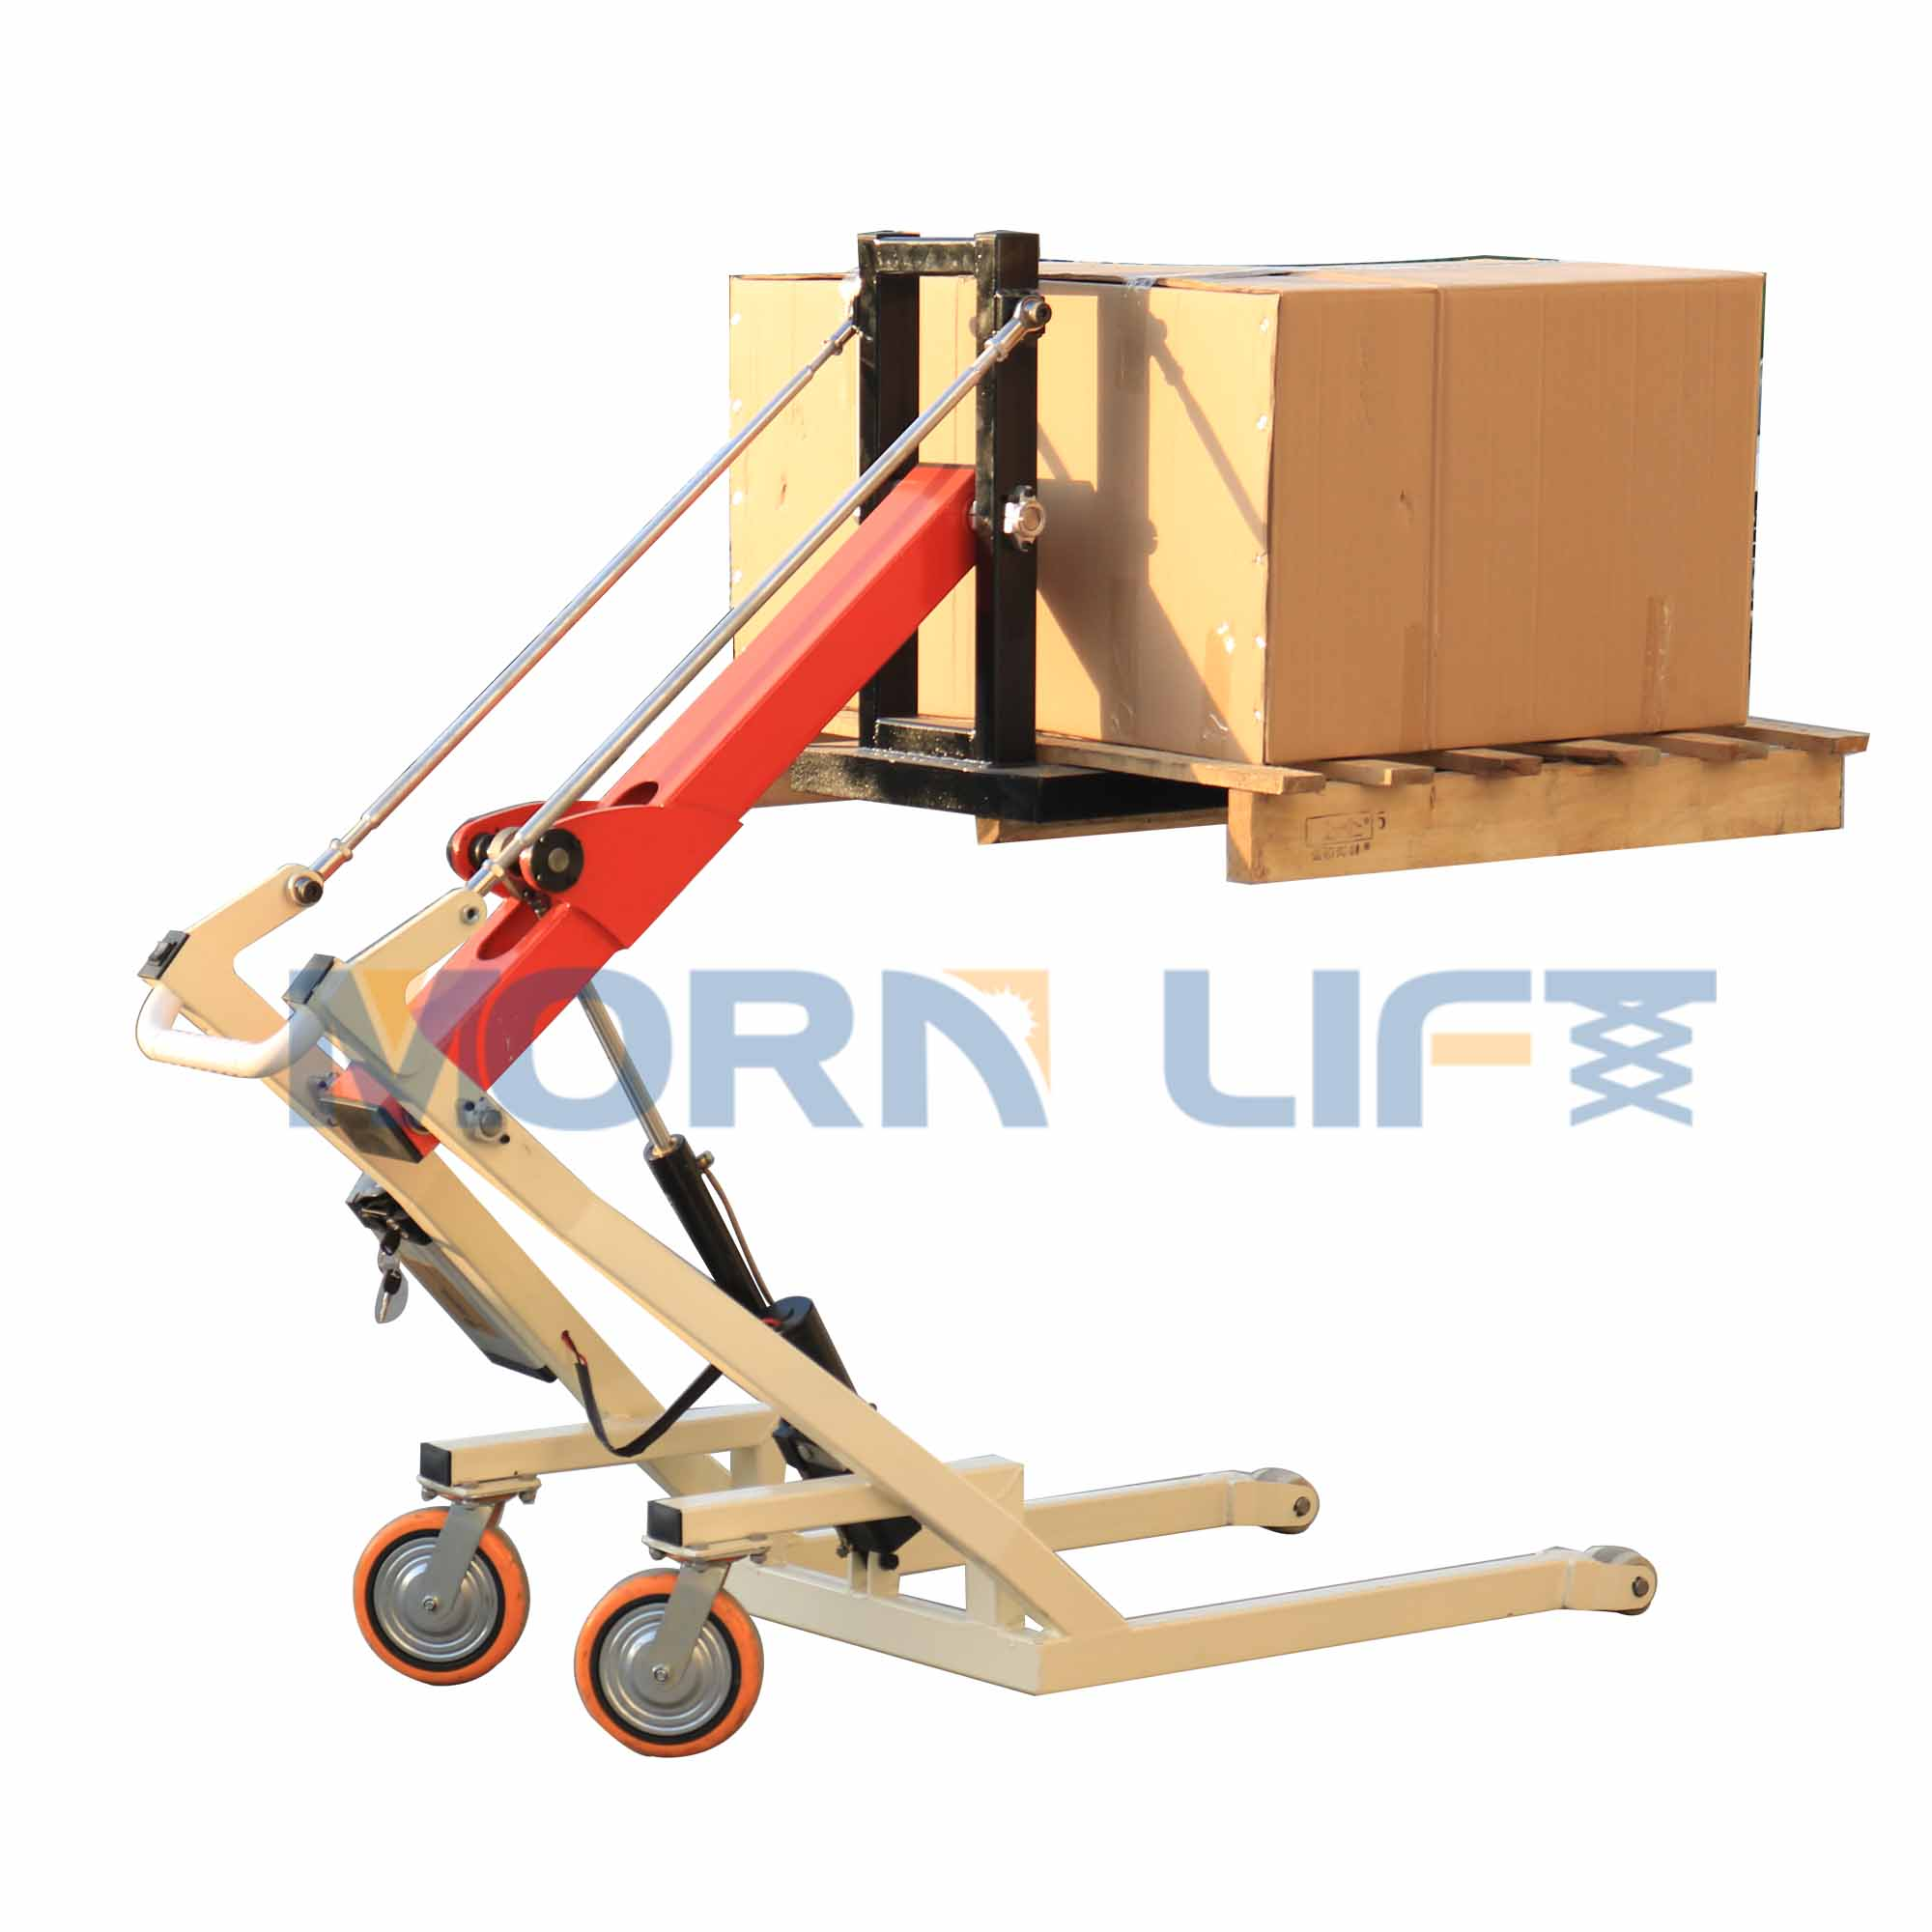 Easy To Operate, Load Capacity 300 Kg MORN LIFT Semi-electric Pallet Truck Smart Small Forklift Made In China